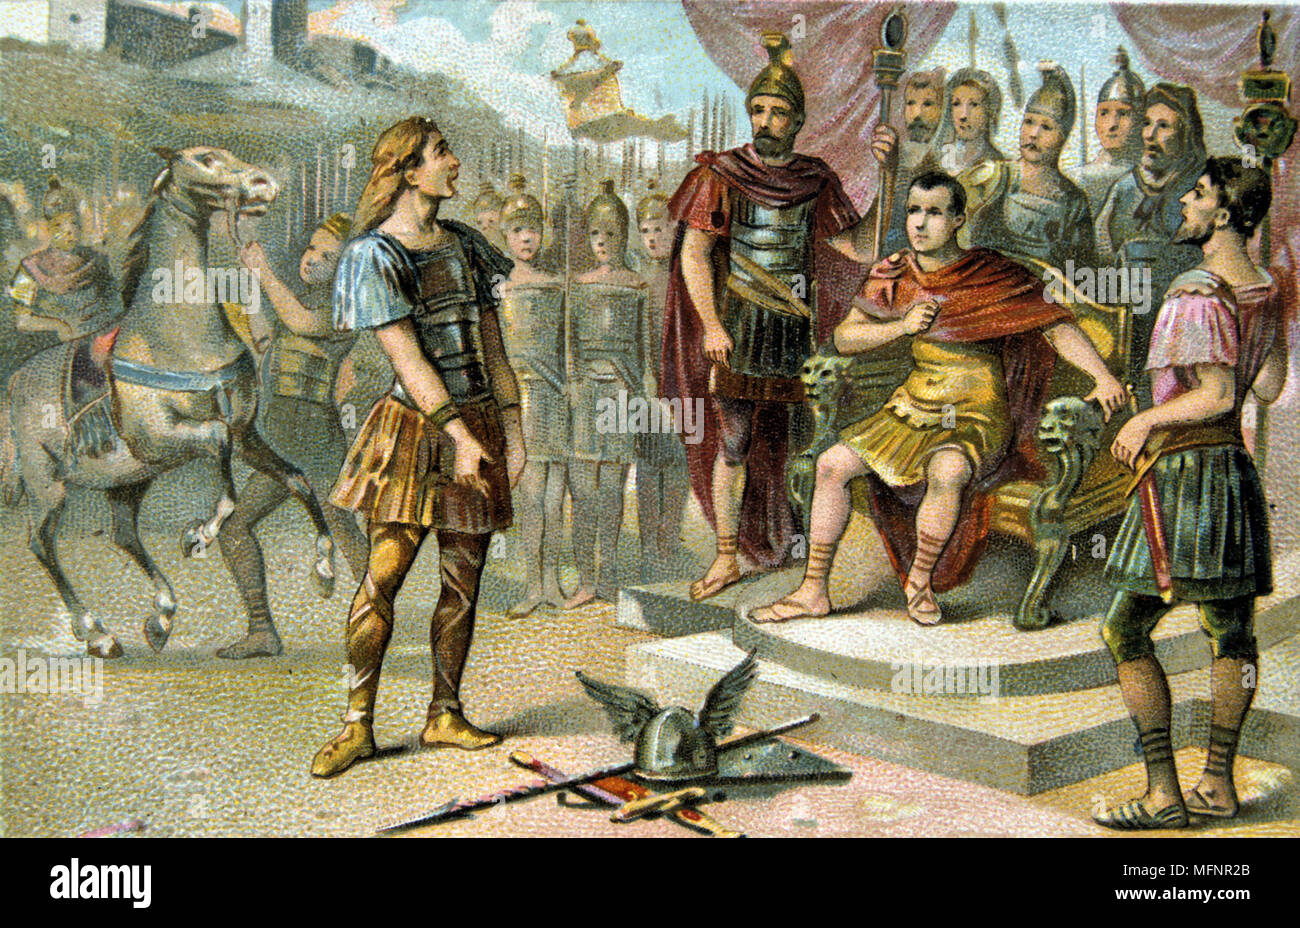 Vercingetorix, Gaulish leader who raised a revolt against Julius Caesar in 52 BC. Finally defeated and put to death in 46 BC.  Vercingetorix submitting to Caesar. France Roman French Nineteenth century Trade Card Chromolithograph - Stock Image